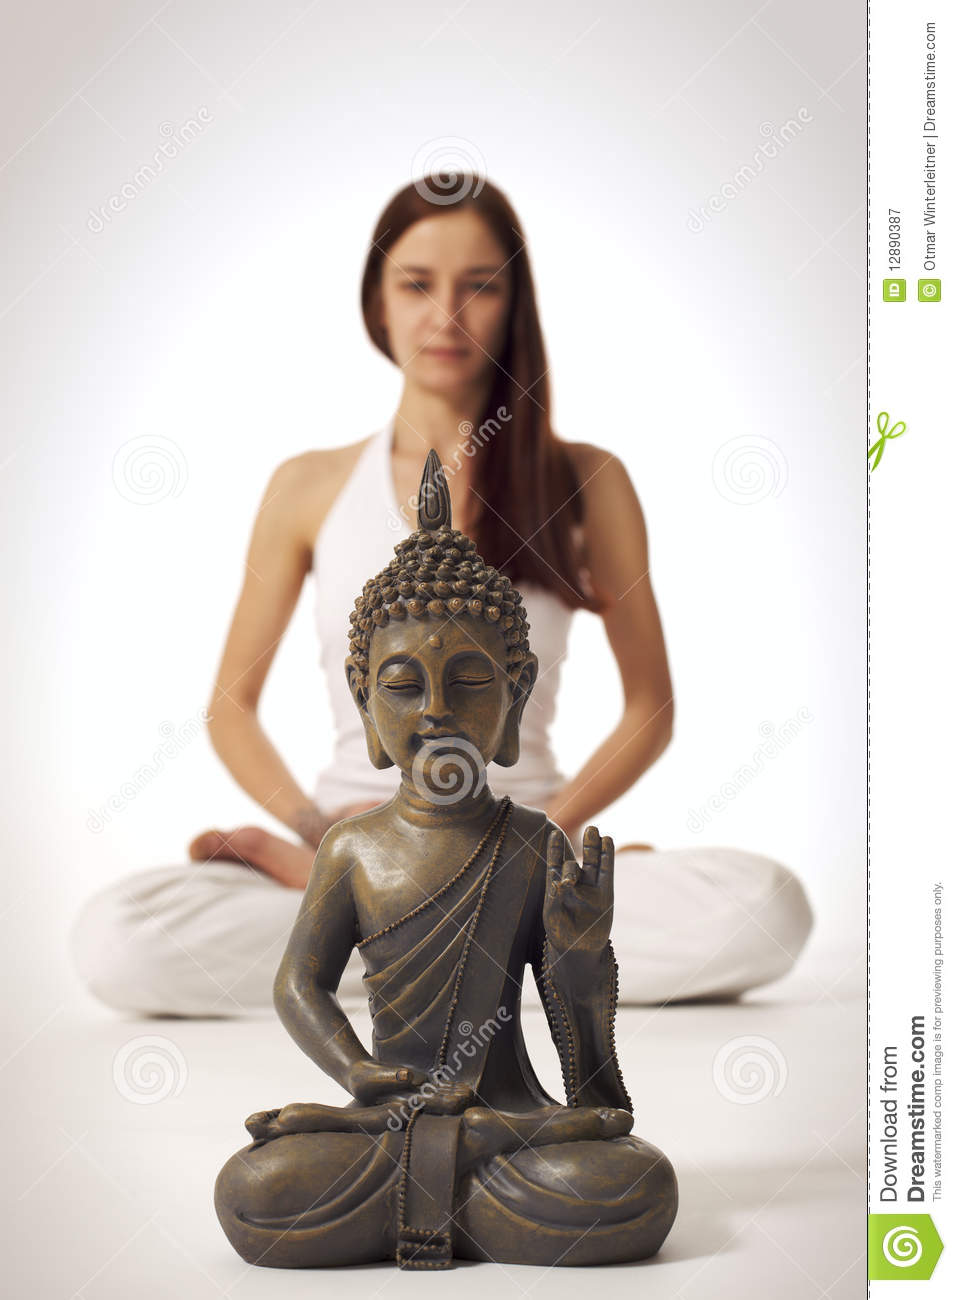 buddhist single women in calumet You are welcome to use buddhist passions solely as a dating  you can use buddhist passions solely as a buddhist focused  | bisexual women.